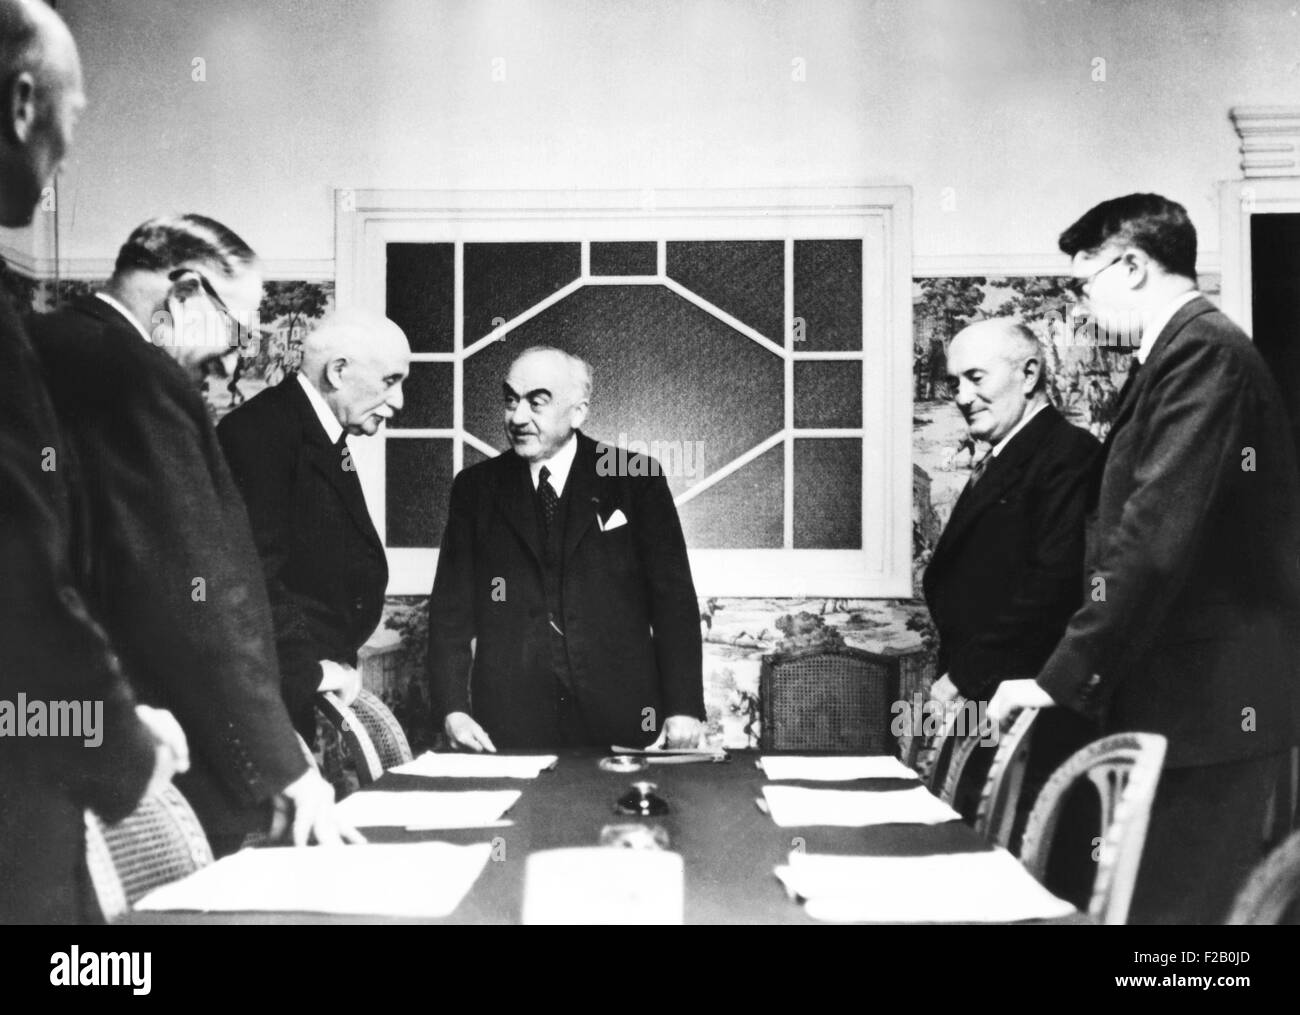 Vichy Cabinet discussing a report by Admiral Darlan, Vichy Foreign Minister. May 31, 1941. Darlan met with Hitler - Stock Image